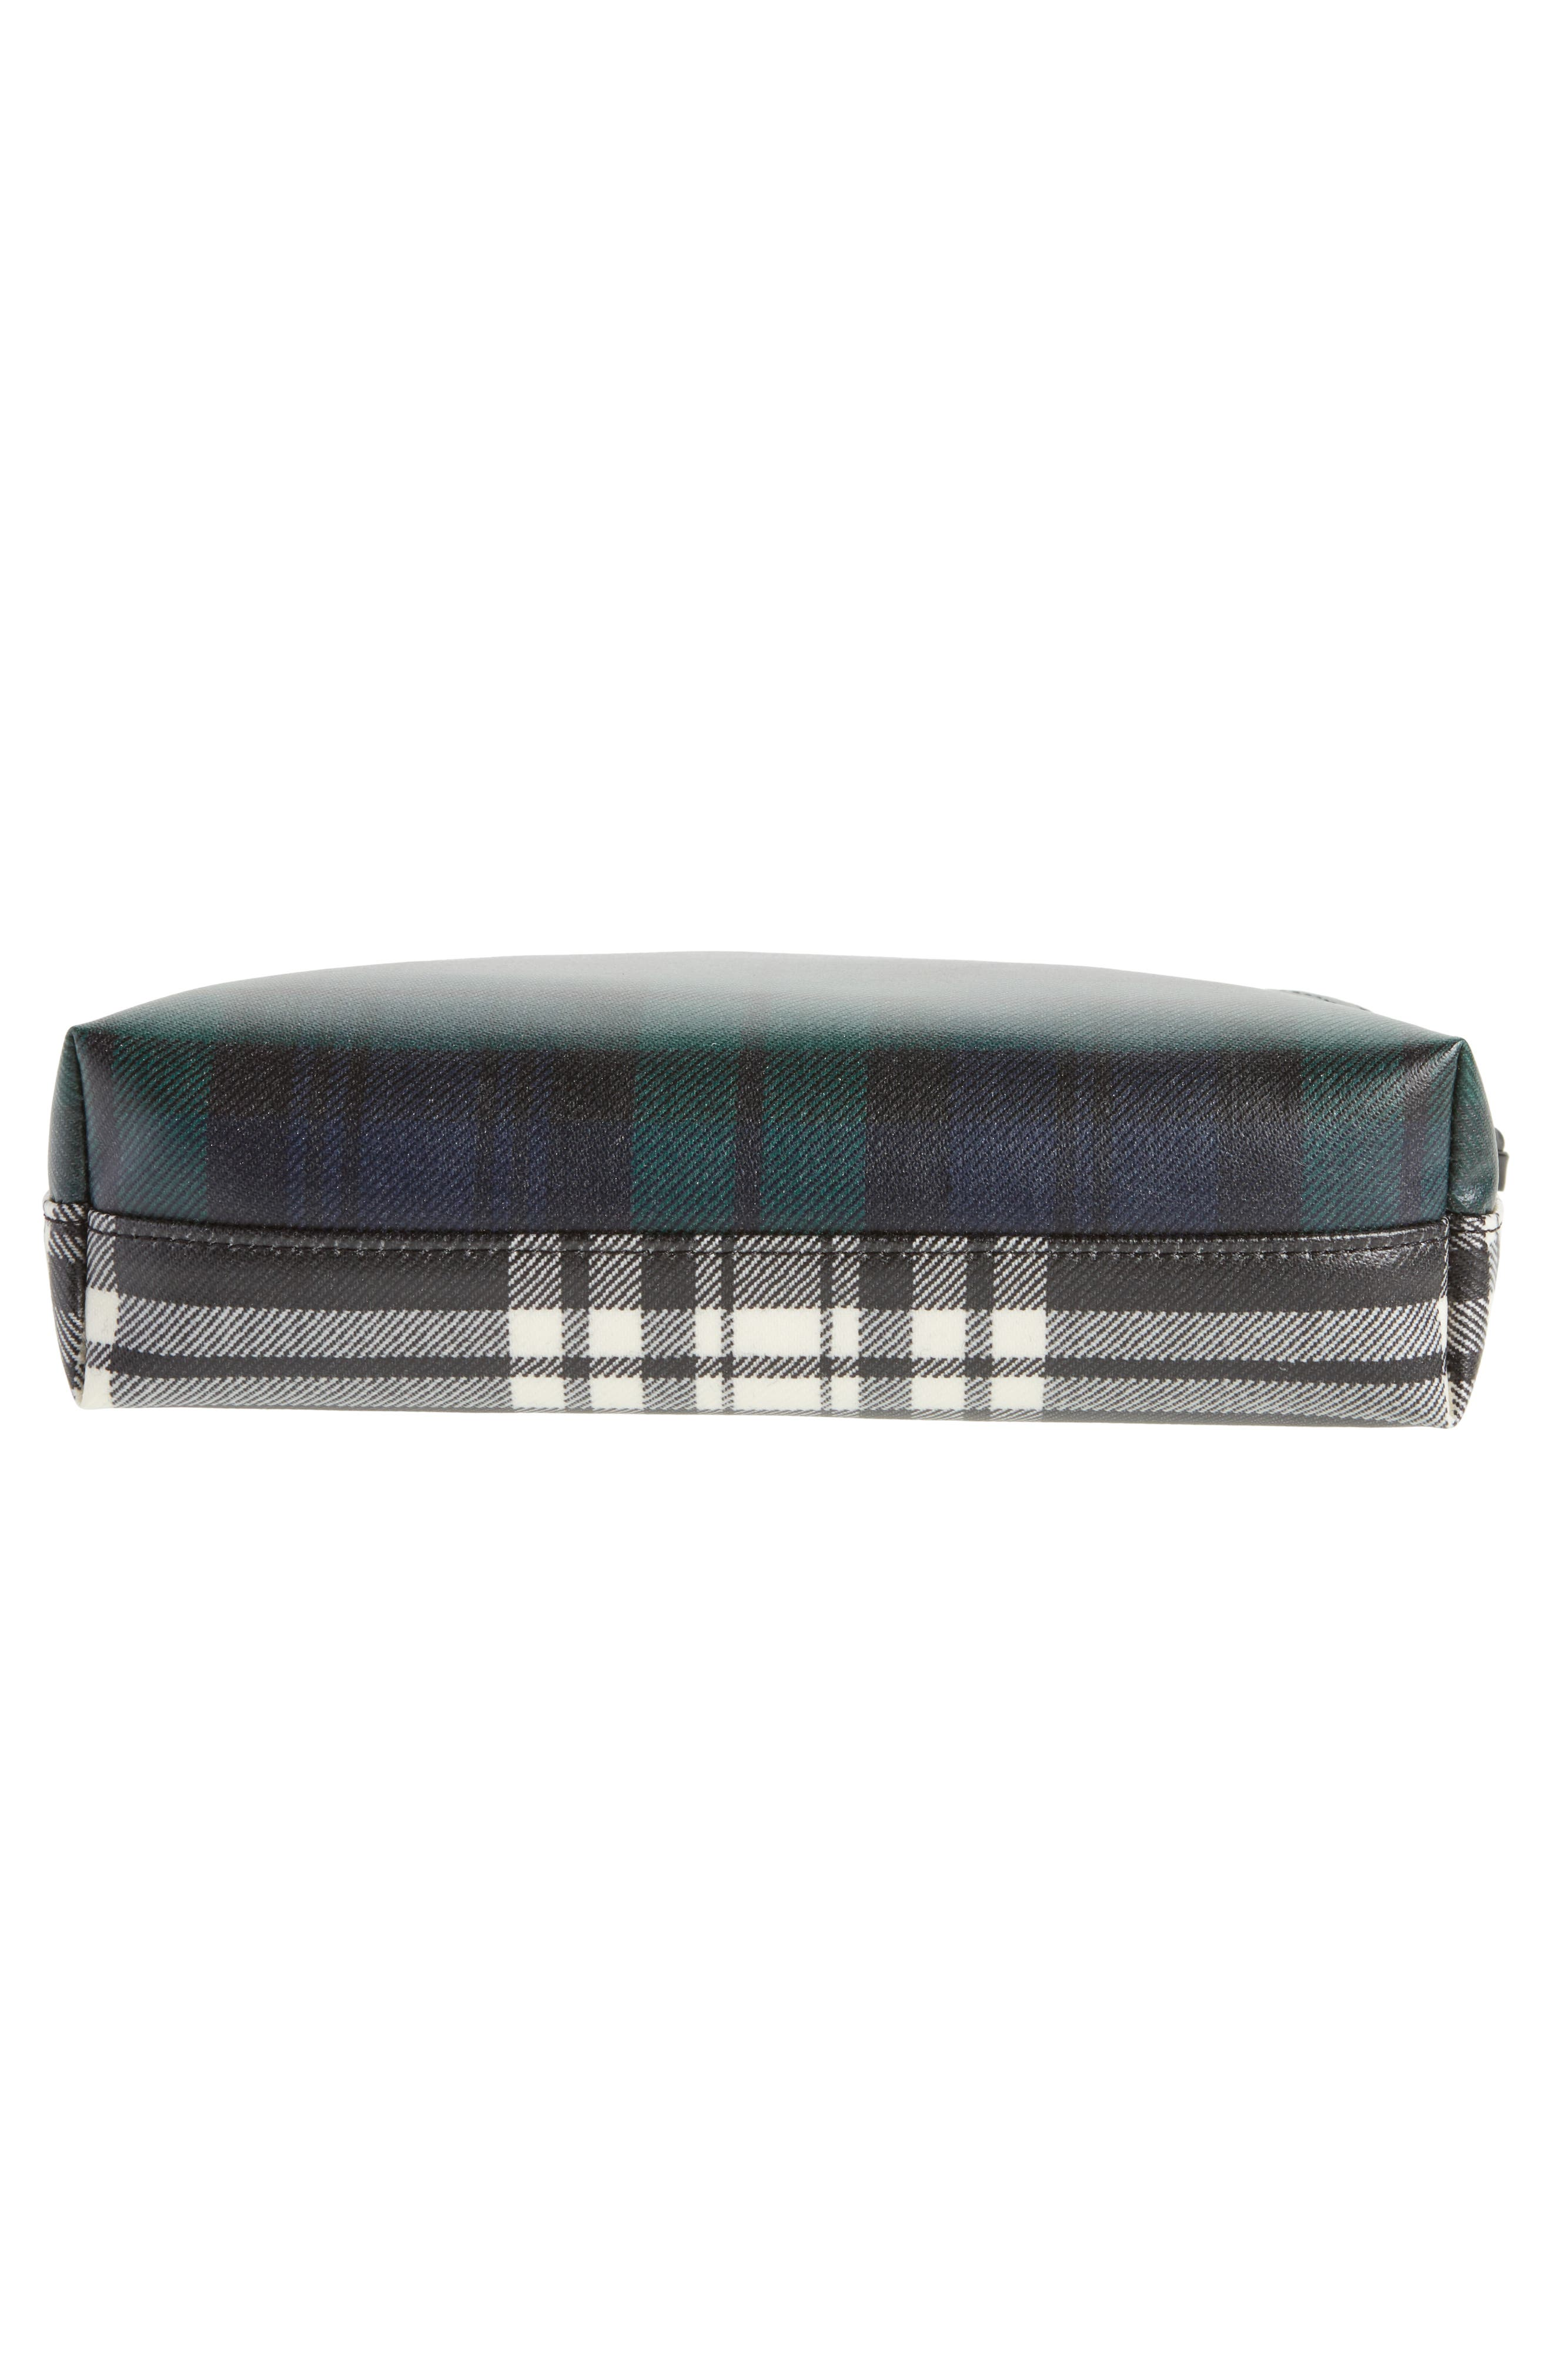 Laminated Tartan Pouch,                             Alternate thumbnail 6, color,                             001